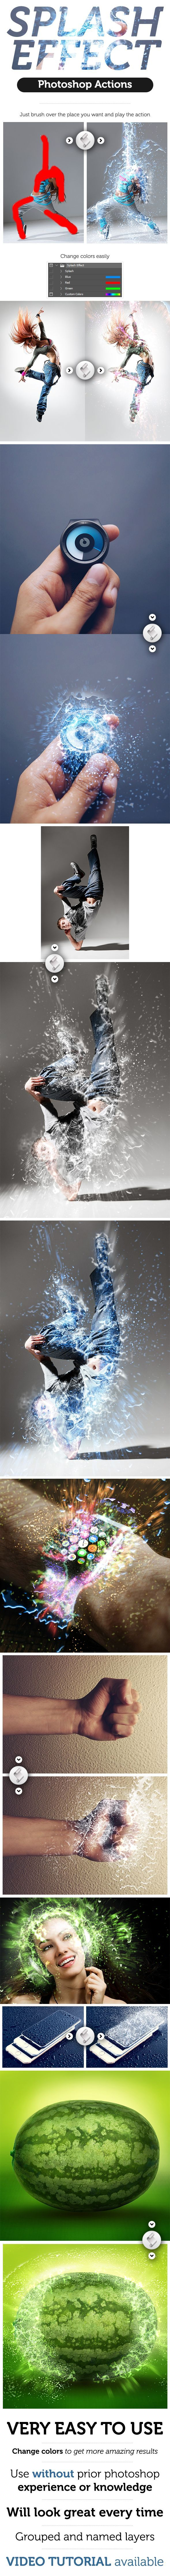 Splash Effect Photoshop Action